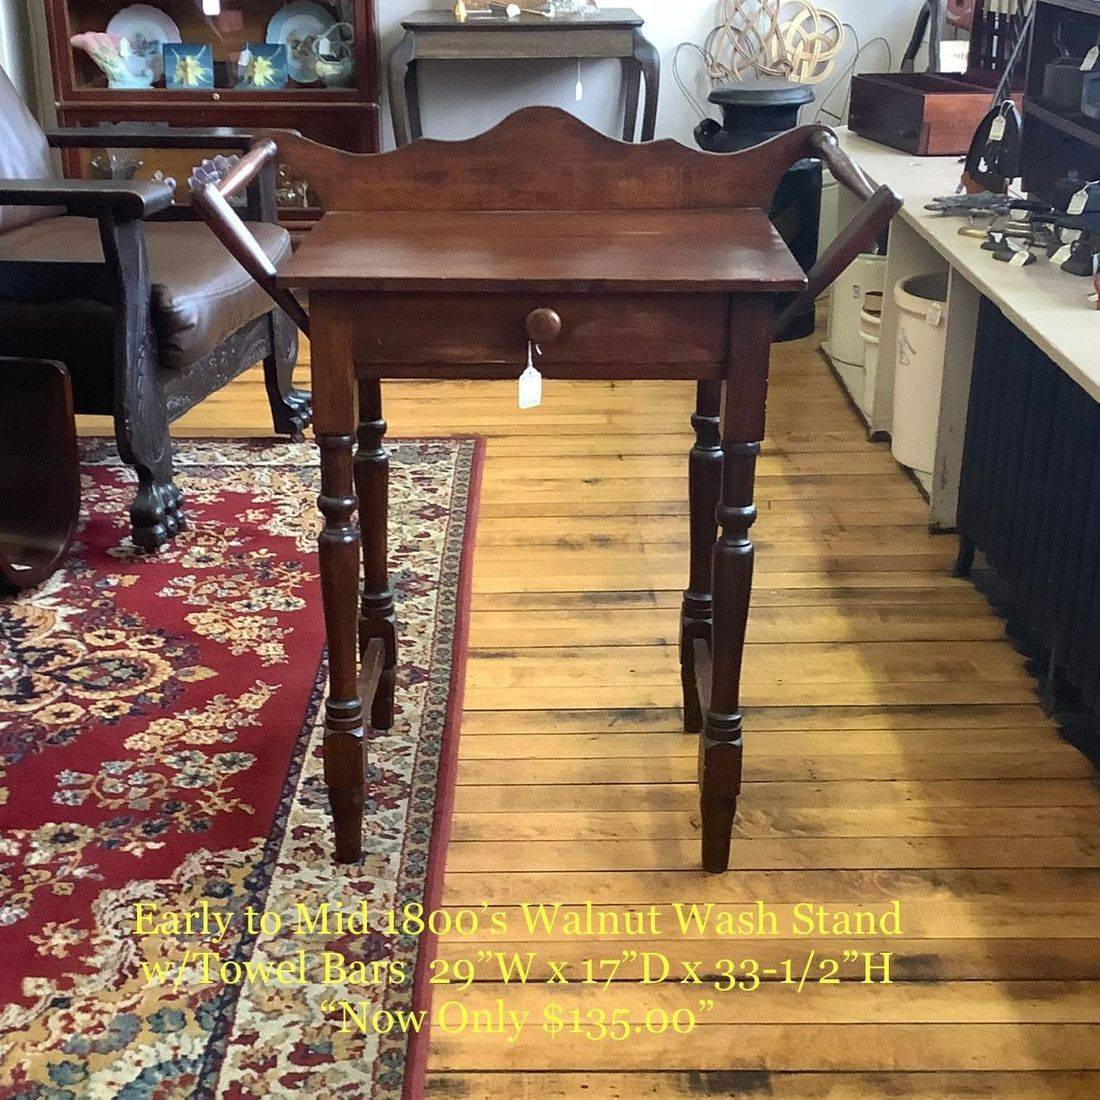 "Early to Mid 1800's Primitive Walnut Wash Stand w/Towel Bars  ""Now Only  $135.00"""